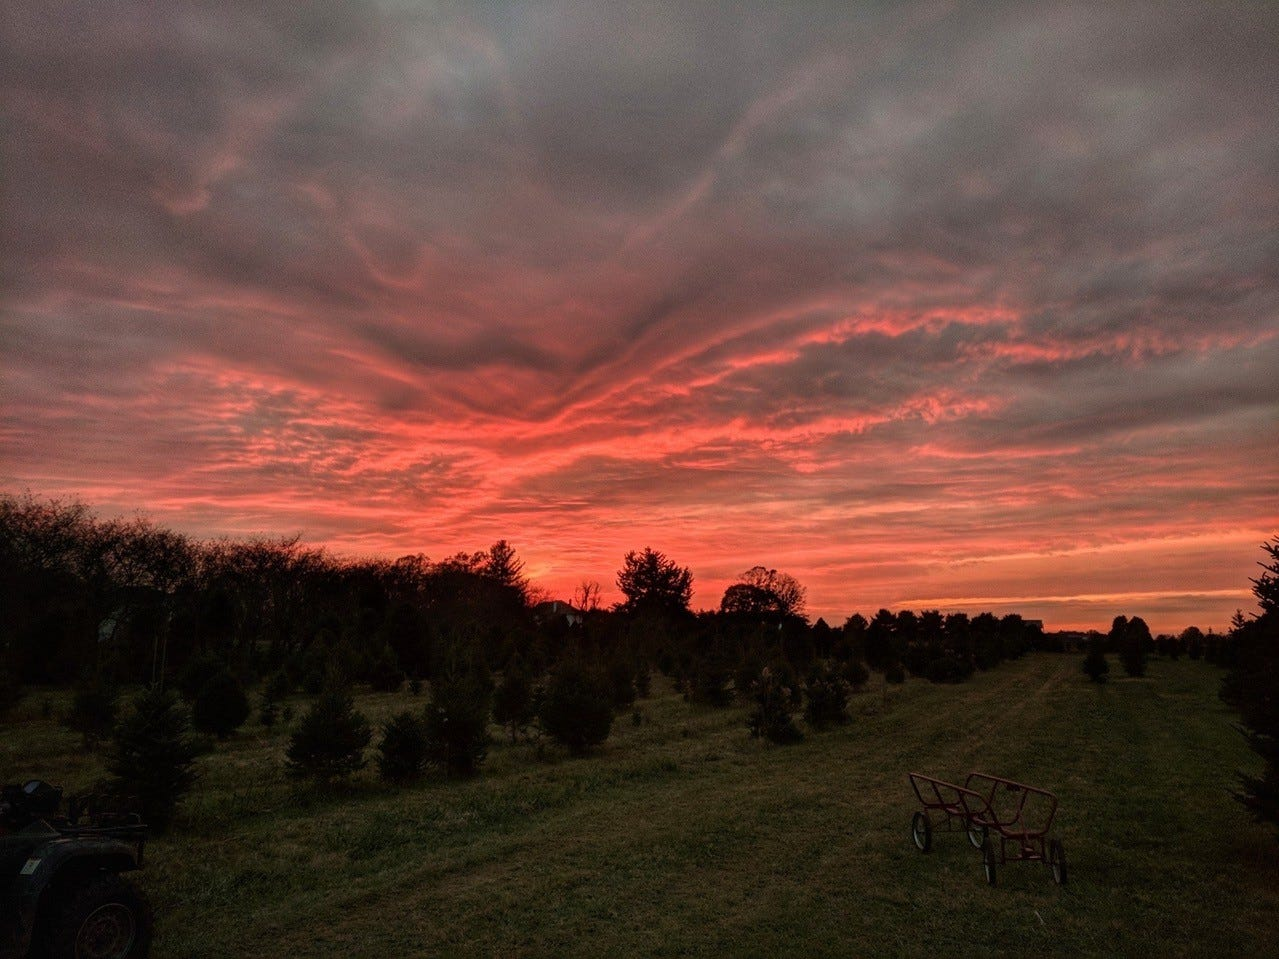 Sunset falls over Barclay's Tree Farm, 35 Orchardside Dr., Cranbury. The farm sells cut-your-own trees of Blue Spruce, Norway Spruce, Douglas Fir, Concolor Fir and Fraser Fir, along with wreaths and greens.